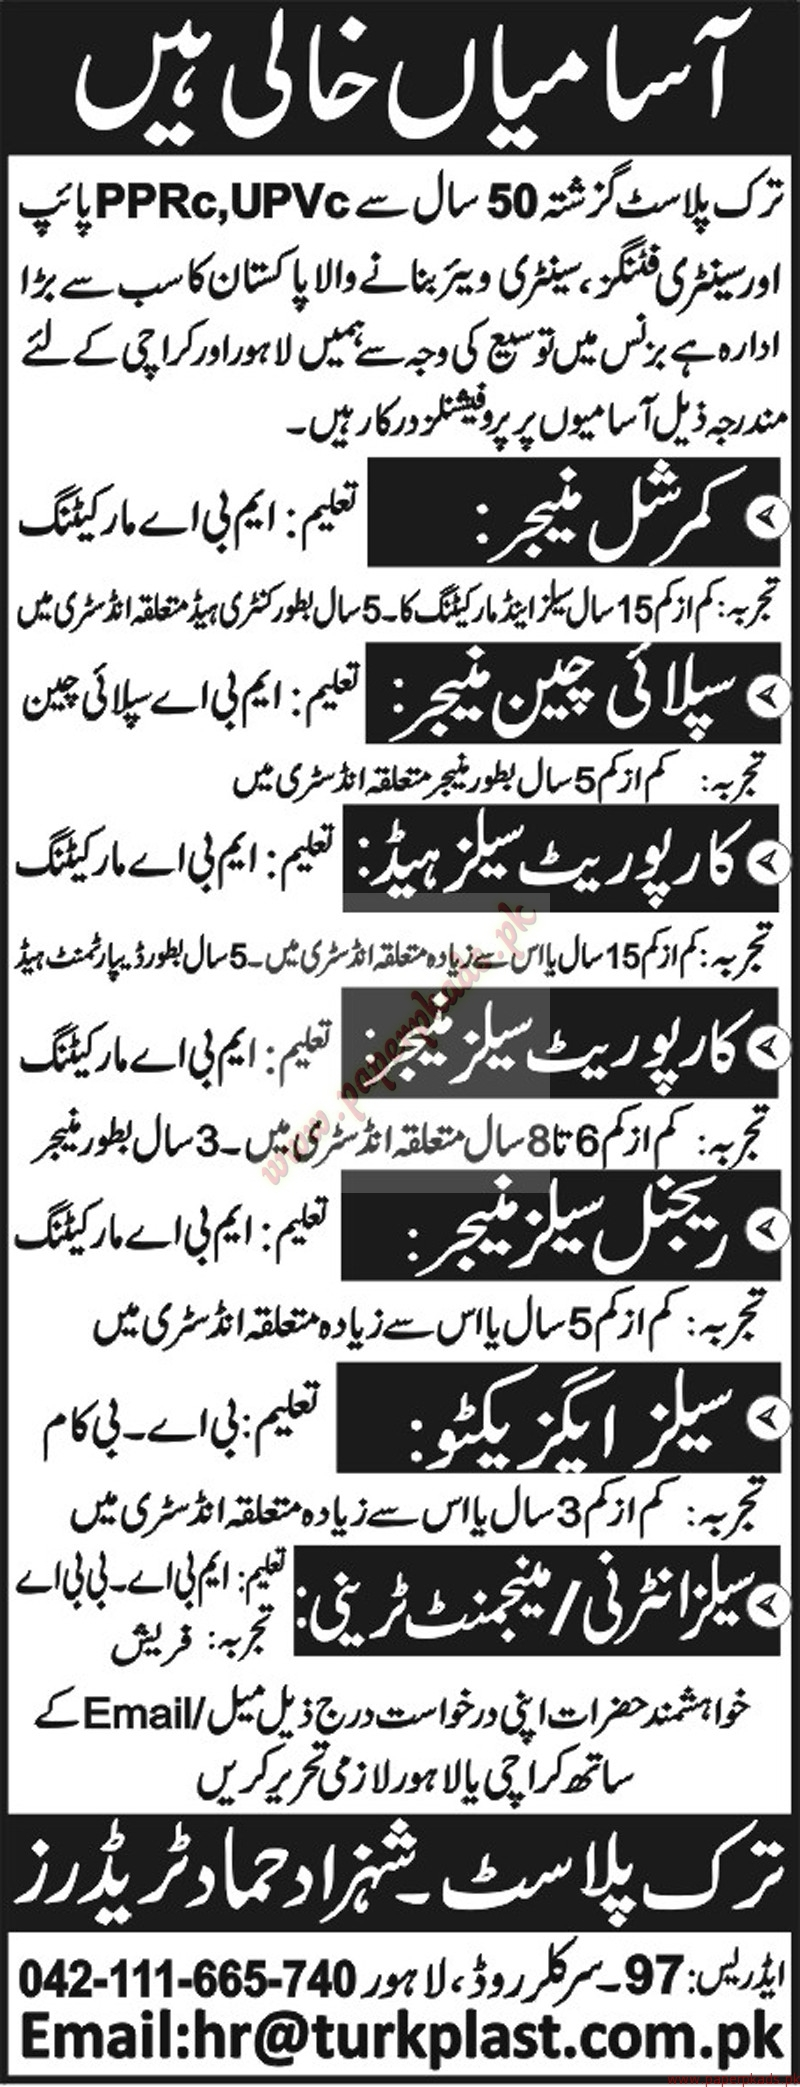 Commercial Manager, Sales Head, Sales Manager, Regional Sales Managers and Other Jobs - Nawaiwaqt Jobs ads 01 January 2017